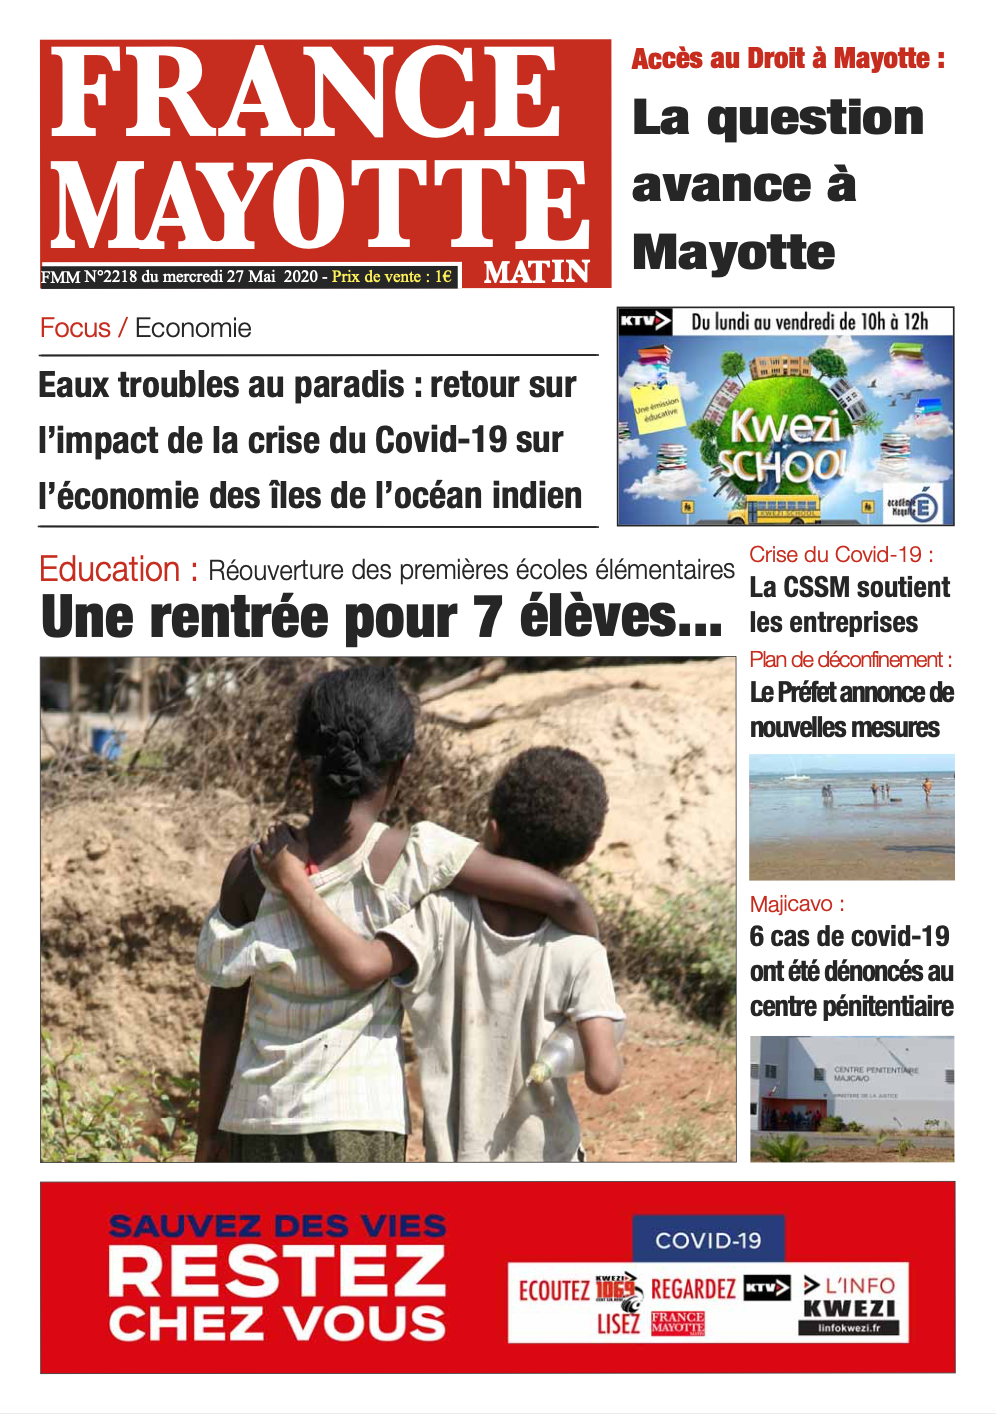 France Mayotte Mercredi 27 mai 2020